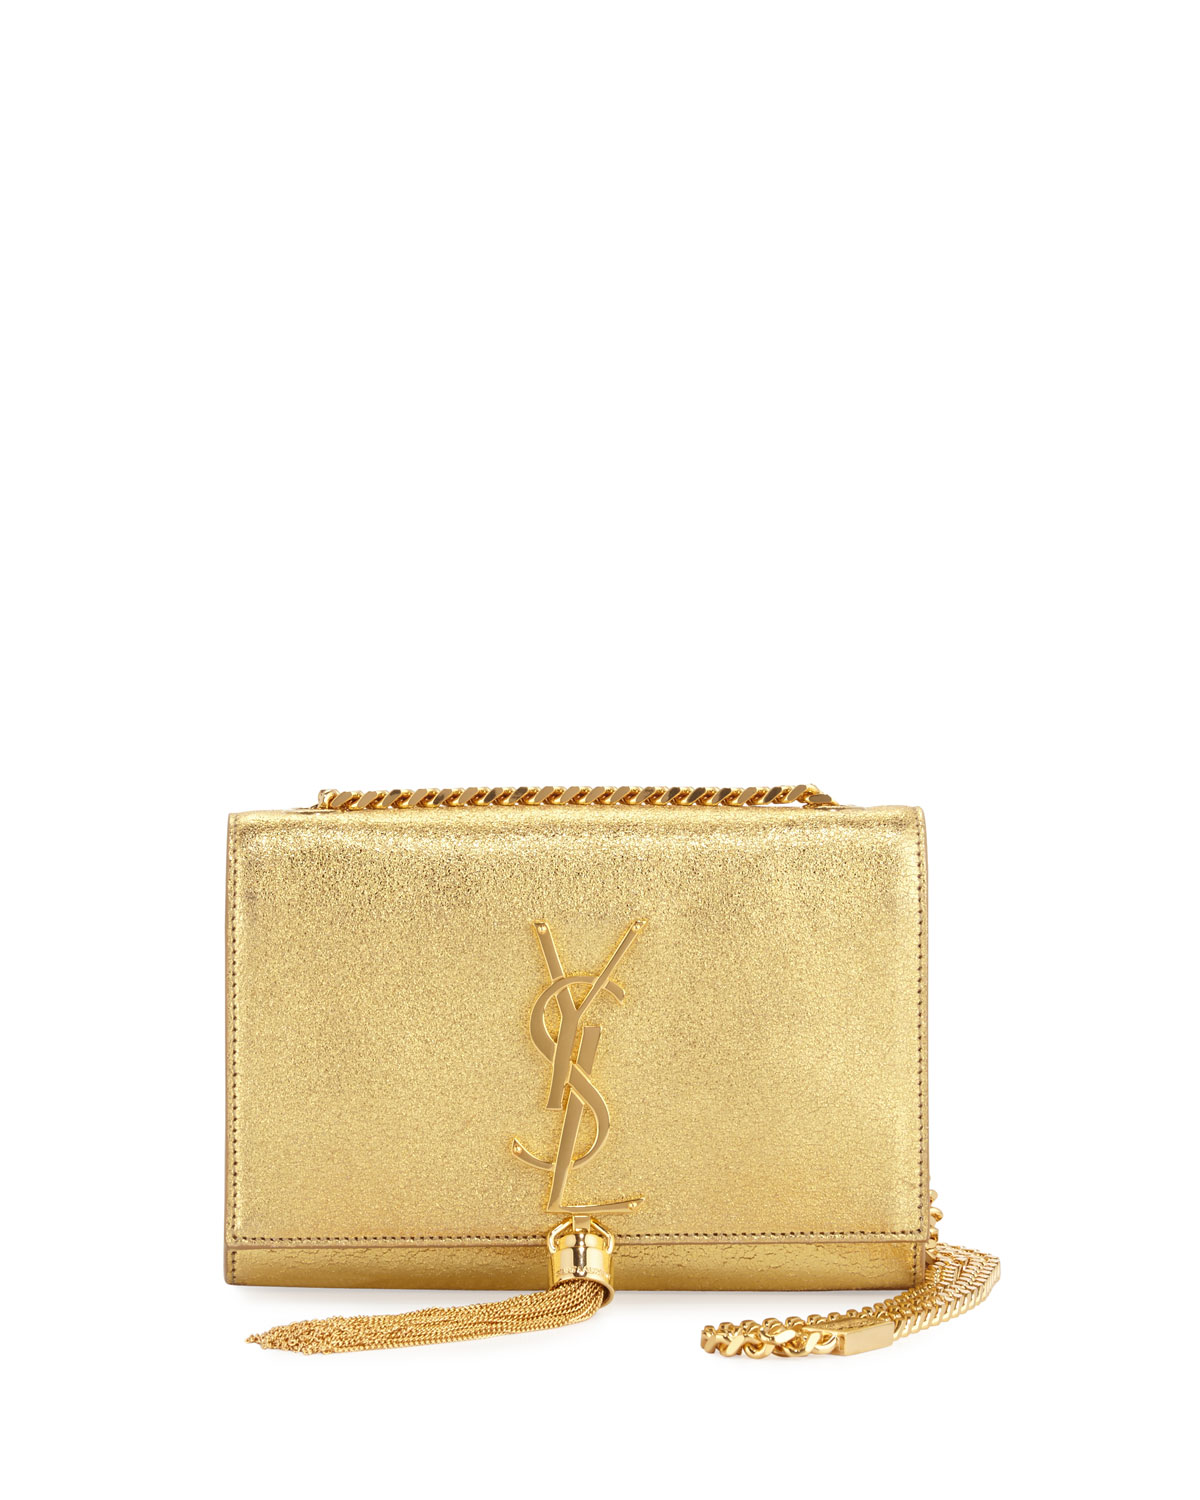 Saint LaurentMonogram Small Kate Metallic Tassel Crossbody Bag, Gold 63bc6074db